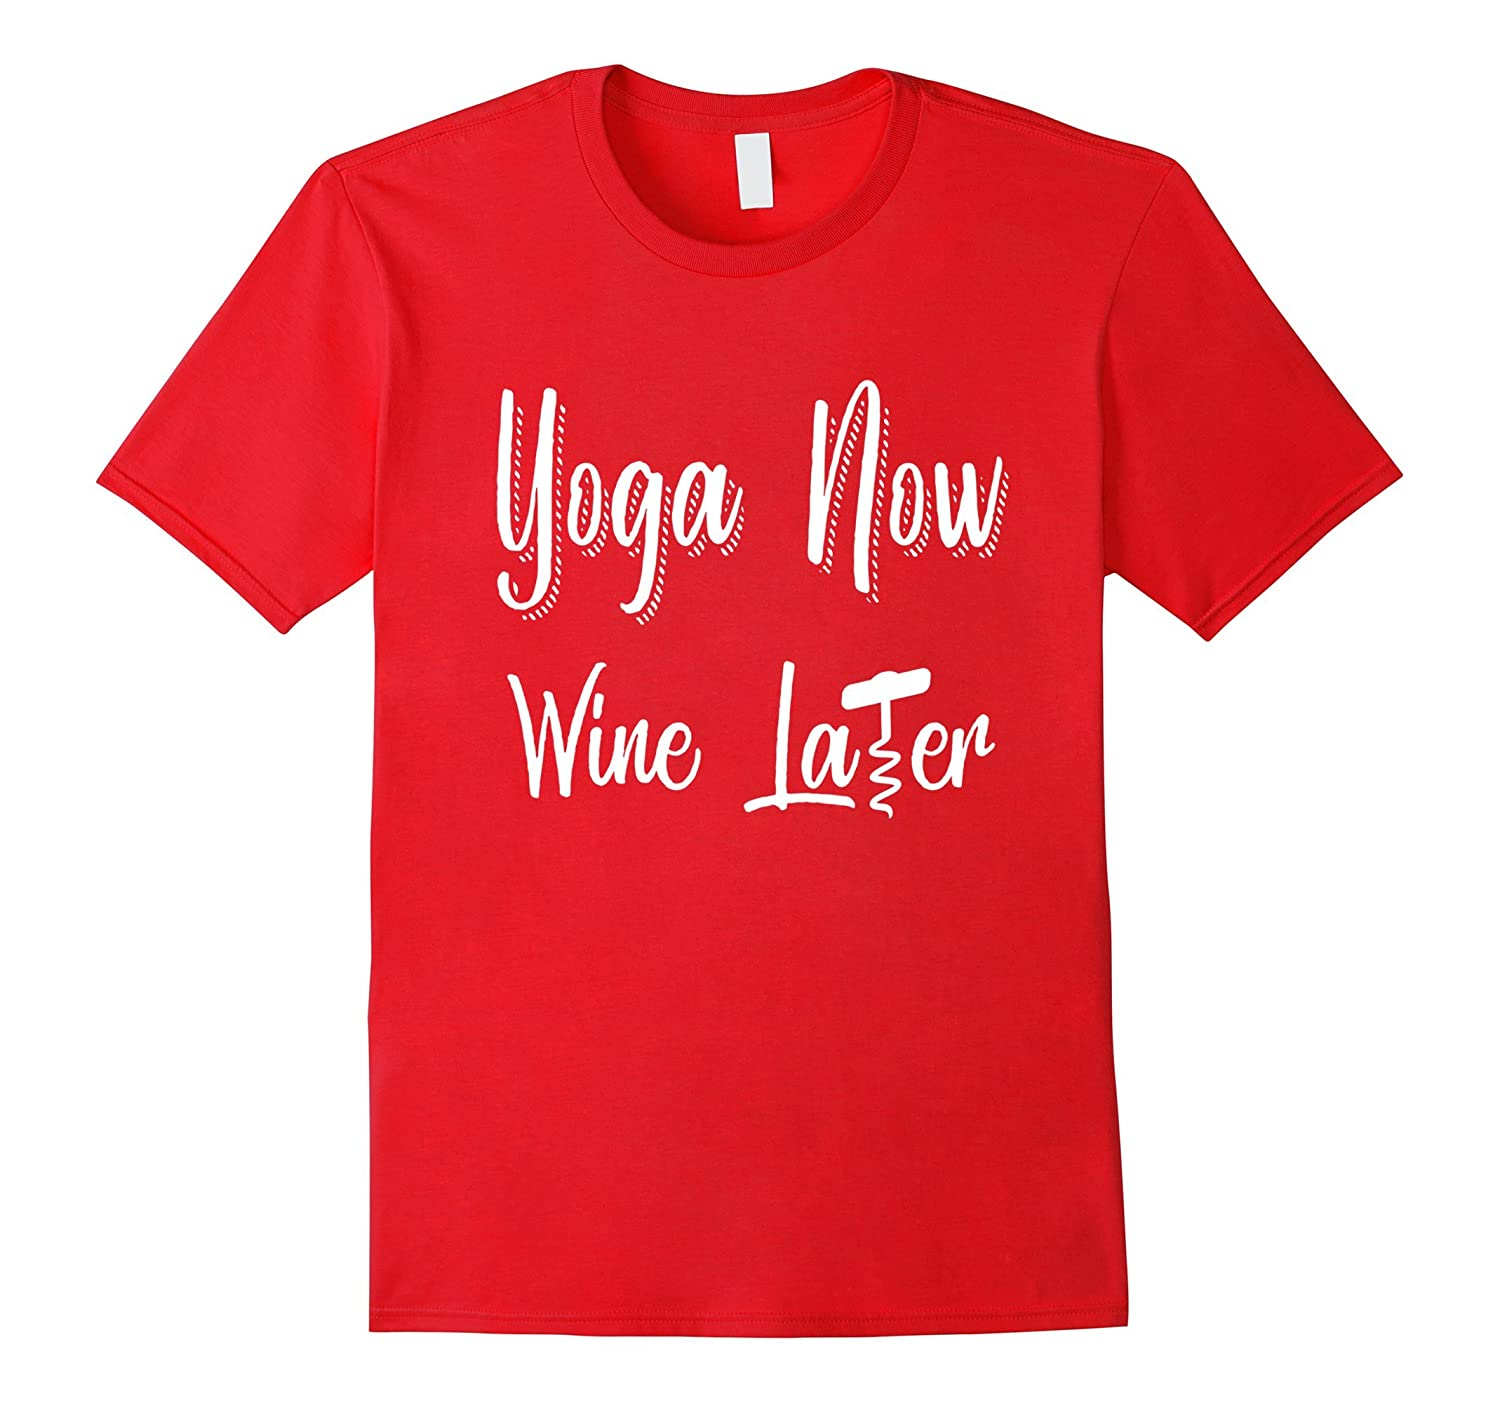 Yoga Now Wine Later Funny Sayings T-Shirt For Women And